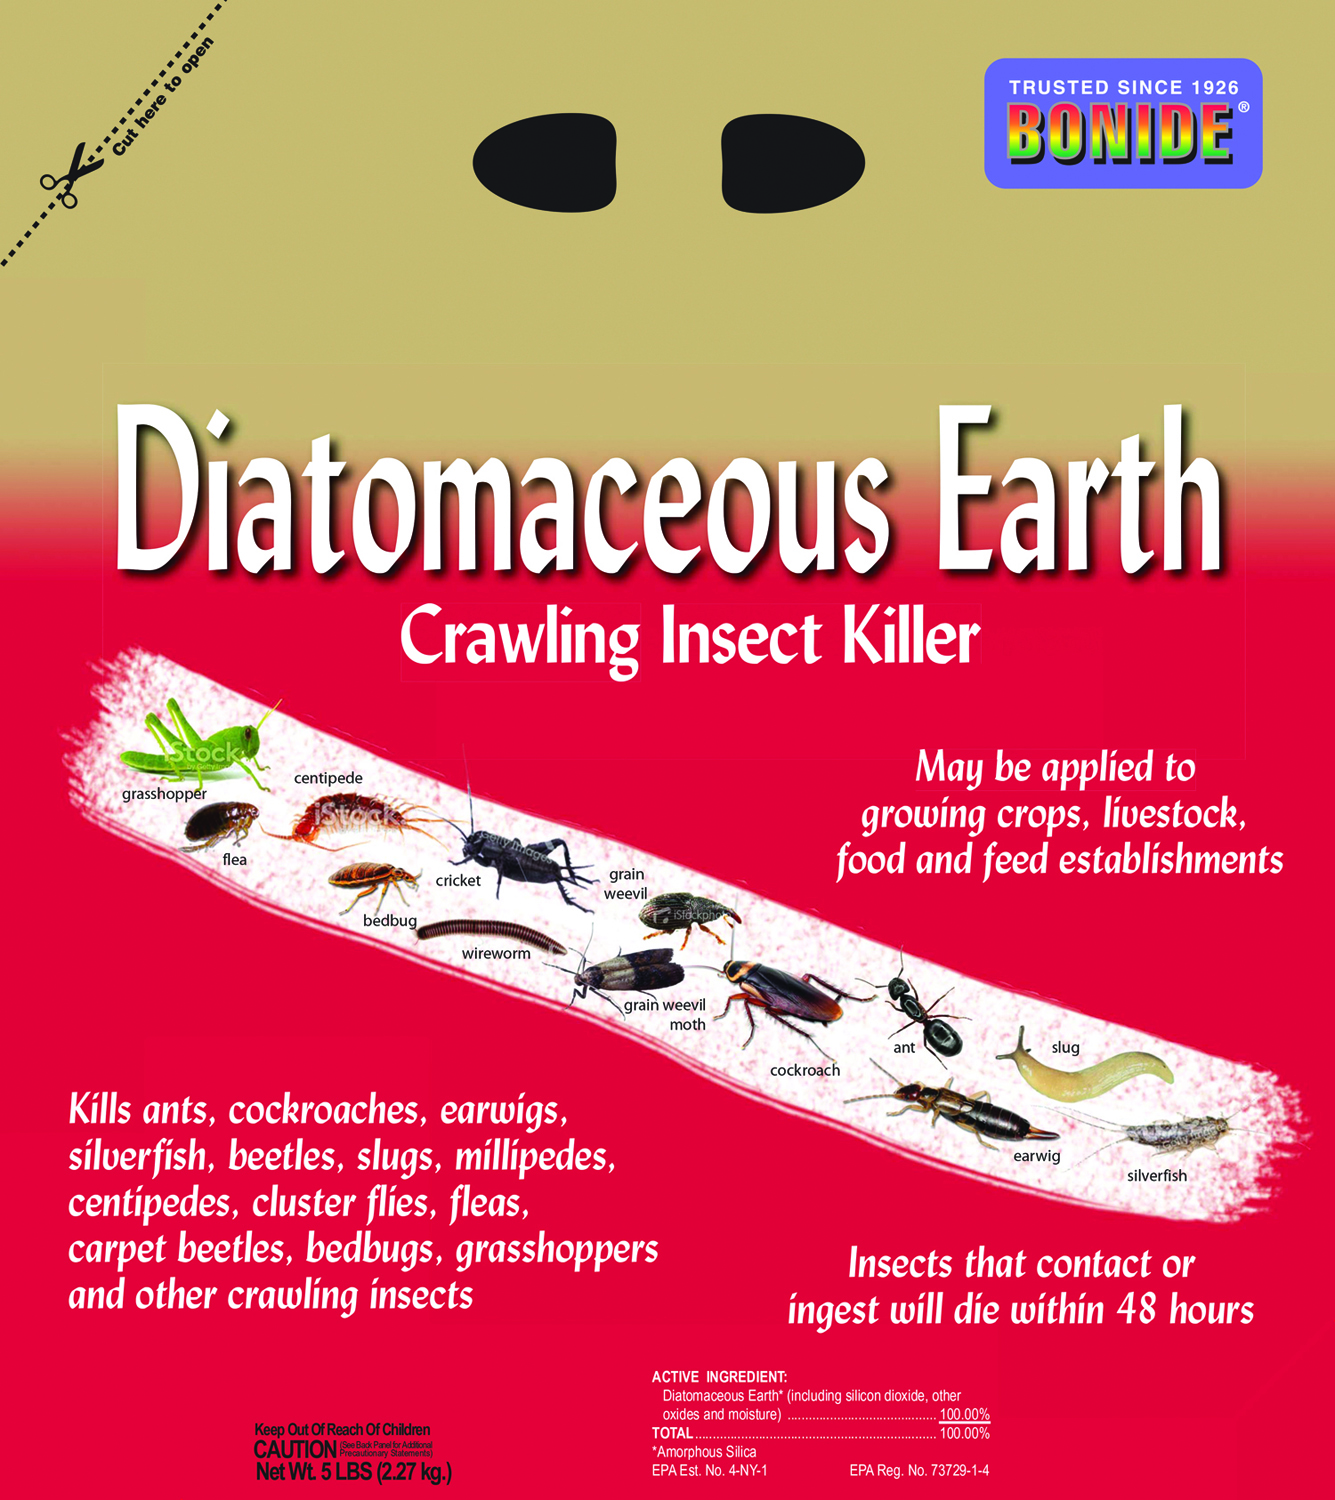 Diatomaceous Earth Crawling Insect Killer 5 Lbs Dealtrend